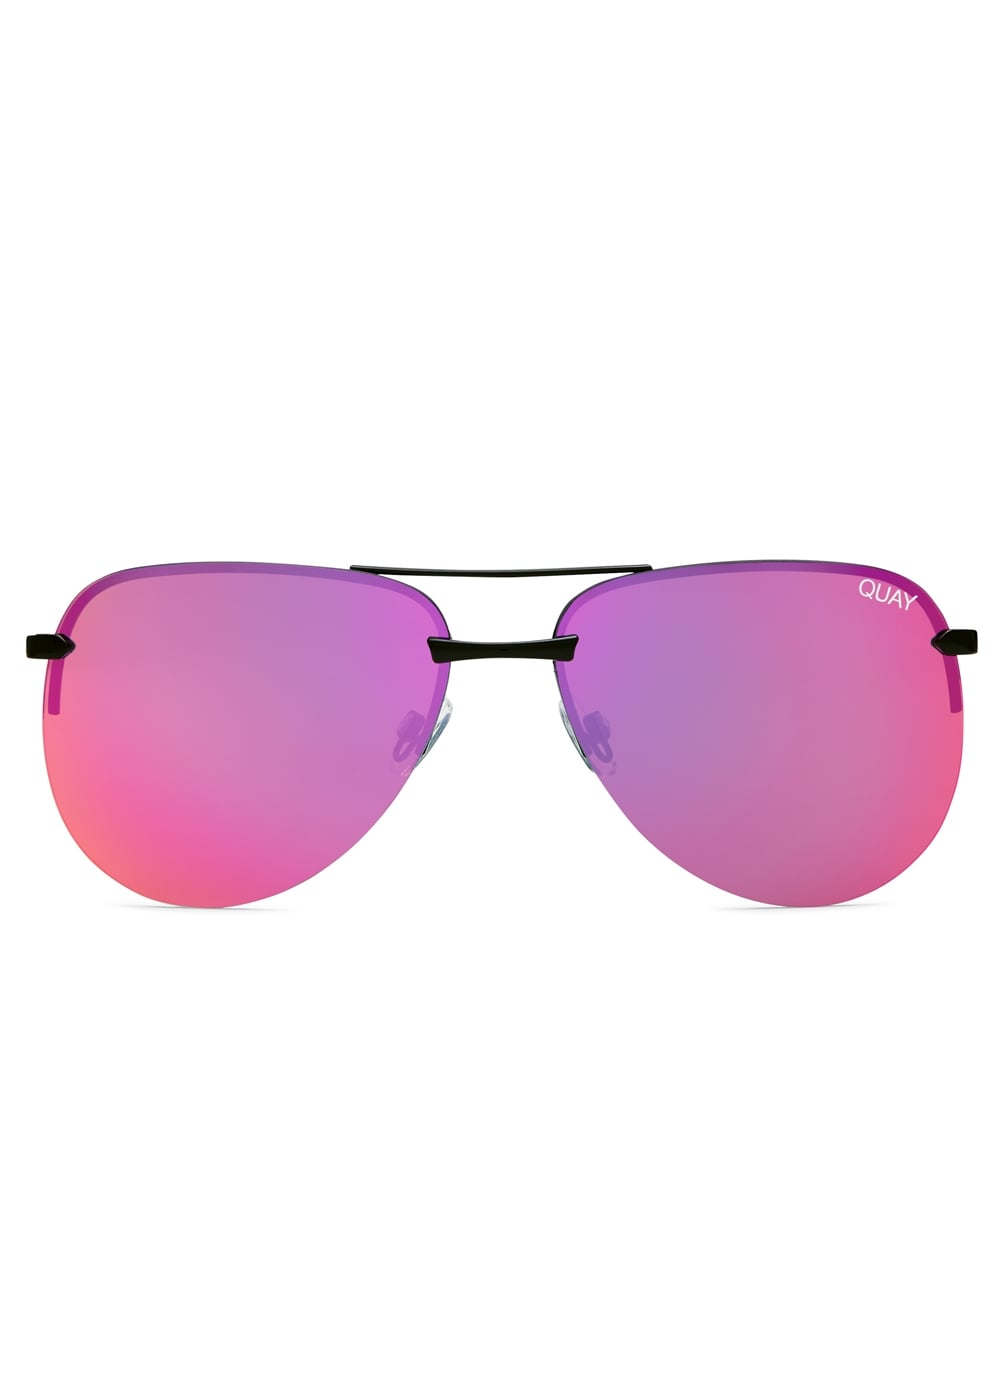 5e30fbb7482 The Playa Sunglasses In Pink by Quay Australia